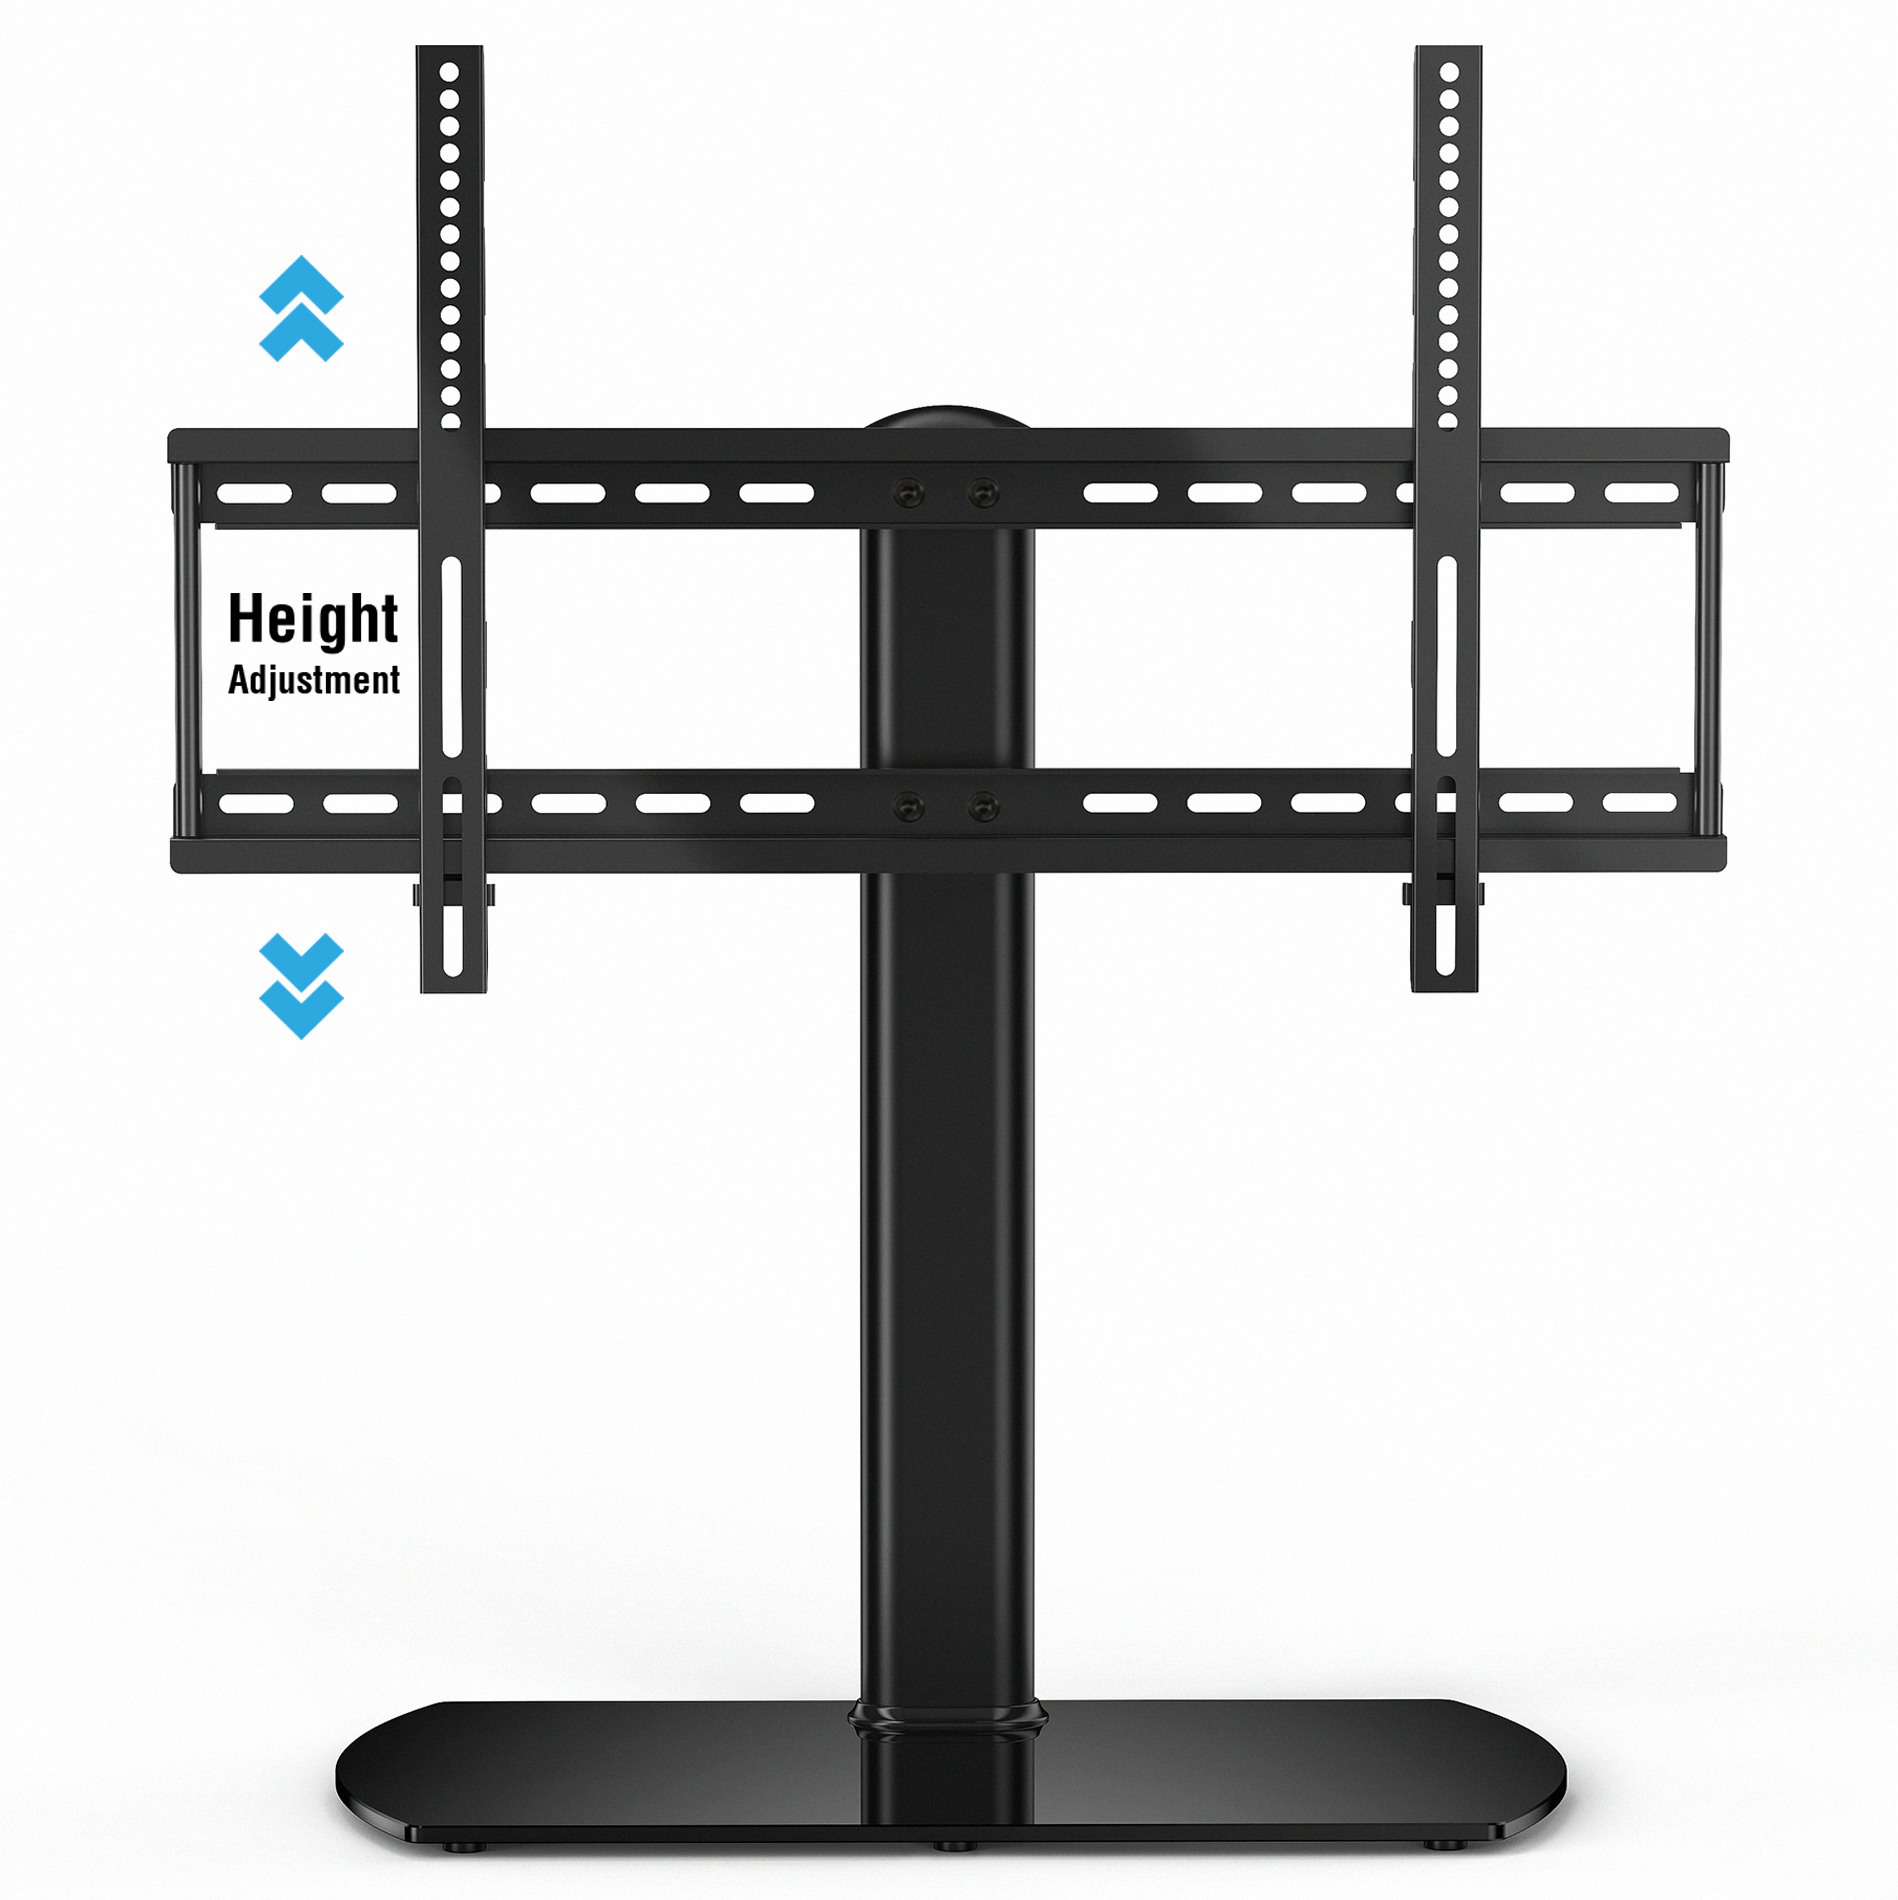 FITUEYES Universal Tabletop TV Stand with Mount for 27 32 42 45 50 up to 60 inch Tv FTT107001GB